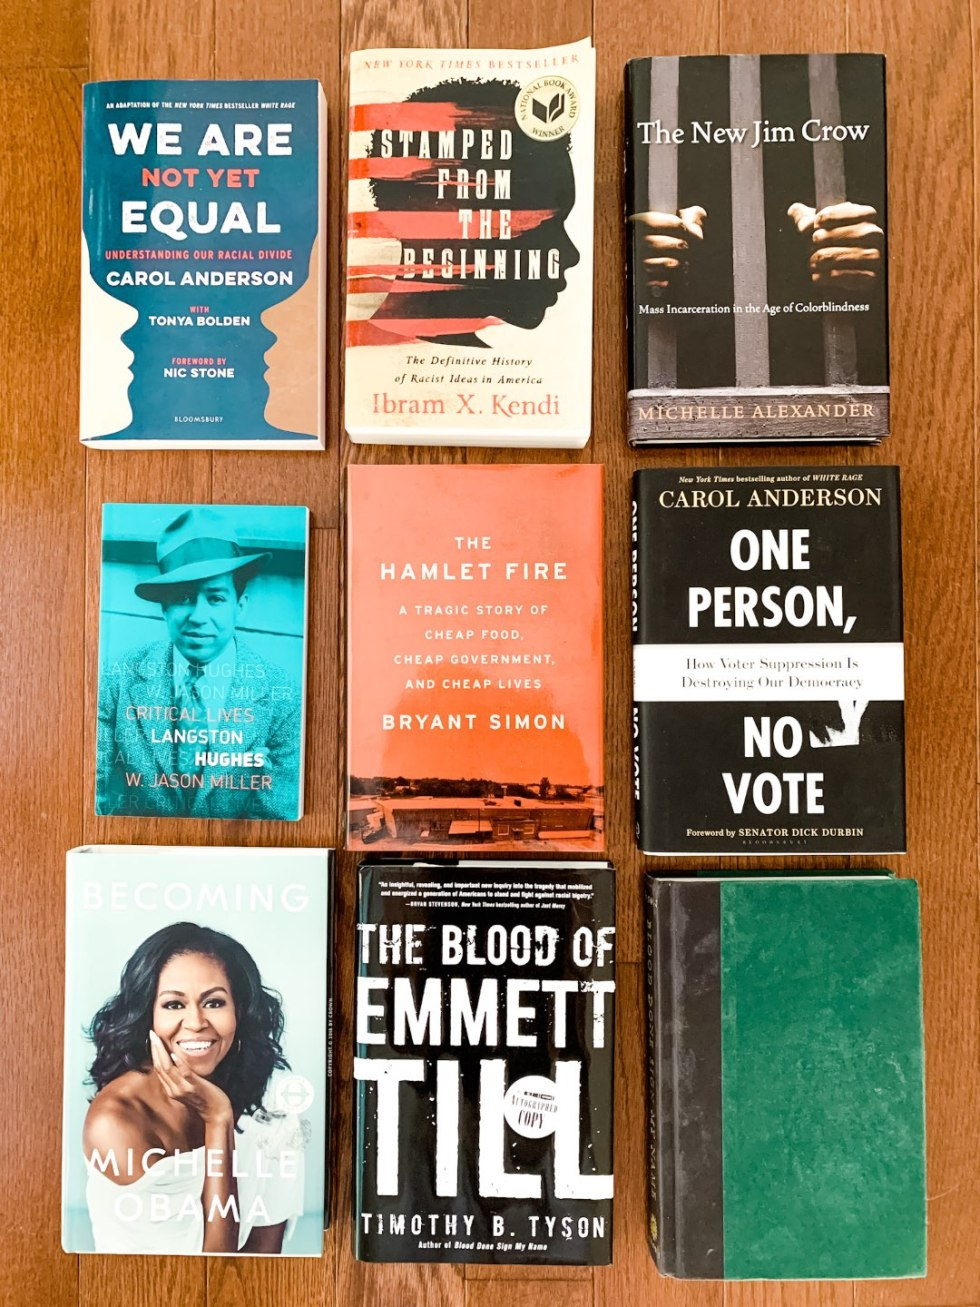 An Anti-Racist Reading List - I'm Fixin' To - @mbg0112 | Anti-Racist Reading List by popular North Carolina lifestyle blog, I'm Fixin' To: image of the books We Are Not Yet Equal, Stamped From the Beginning, The New Jim Crow, Langston Hughes, The Hamlet Fire, One Person No Vote, Becoming, and The Blood of Emmett Till.